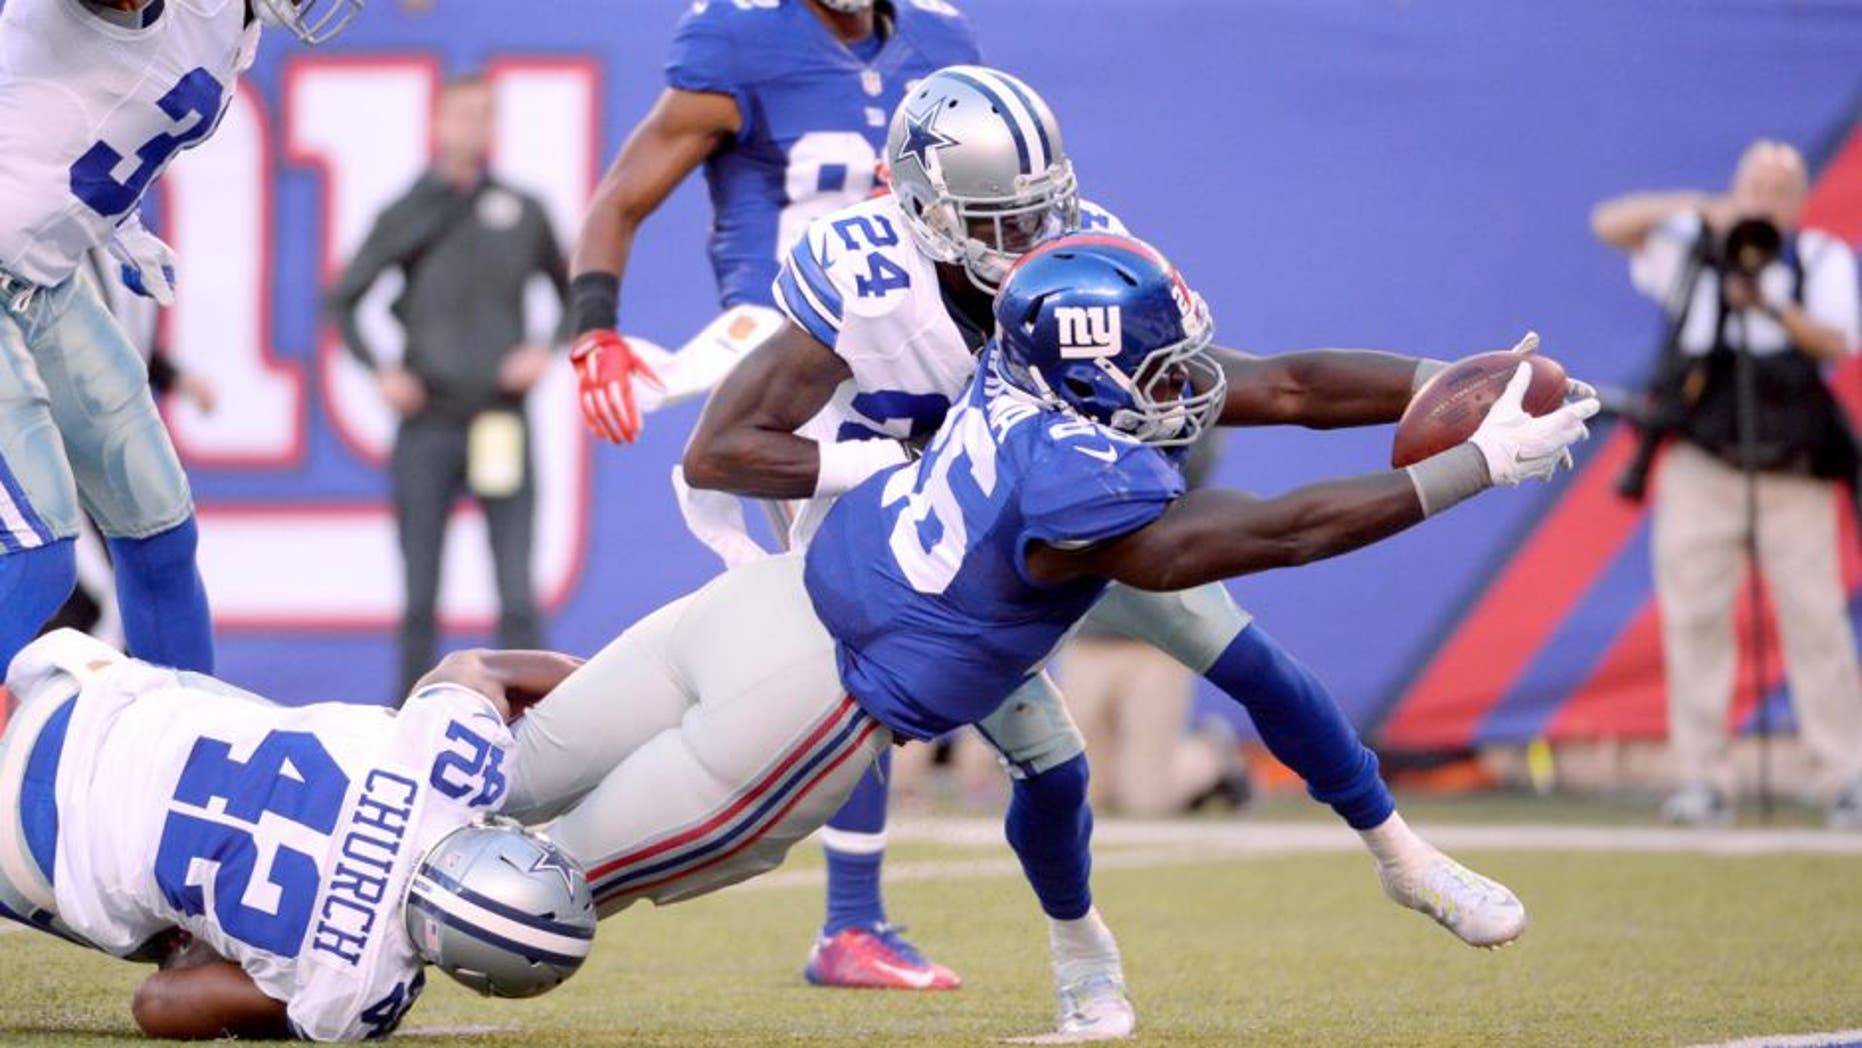 Oct 25, 2015; East Rutherford, NJ, USA; New York Giants running back Orleans Darkwa (26) dives for a touchdown pas Dallas Cowboys strong safety Barry Church (42) in the first half during the NFL game at MetLife Stadium. Mandatory Credit: Robert Deutsch-USA TODAY Sports